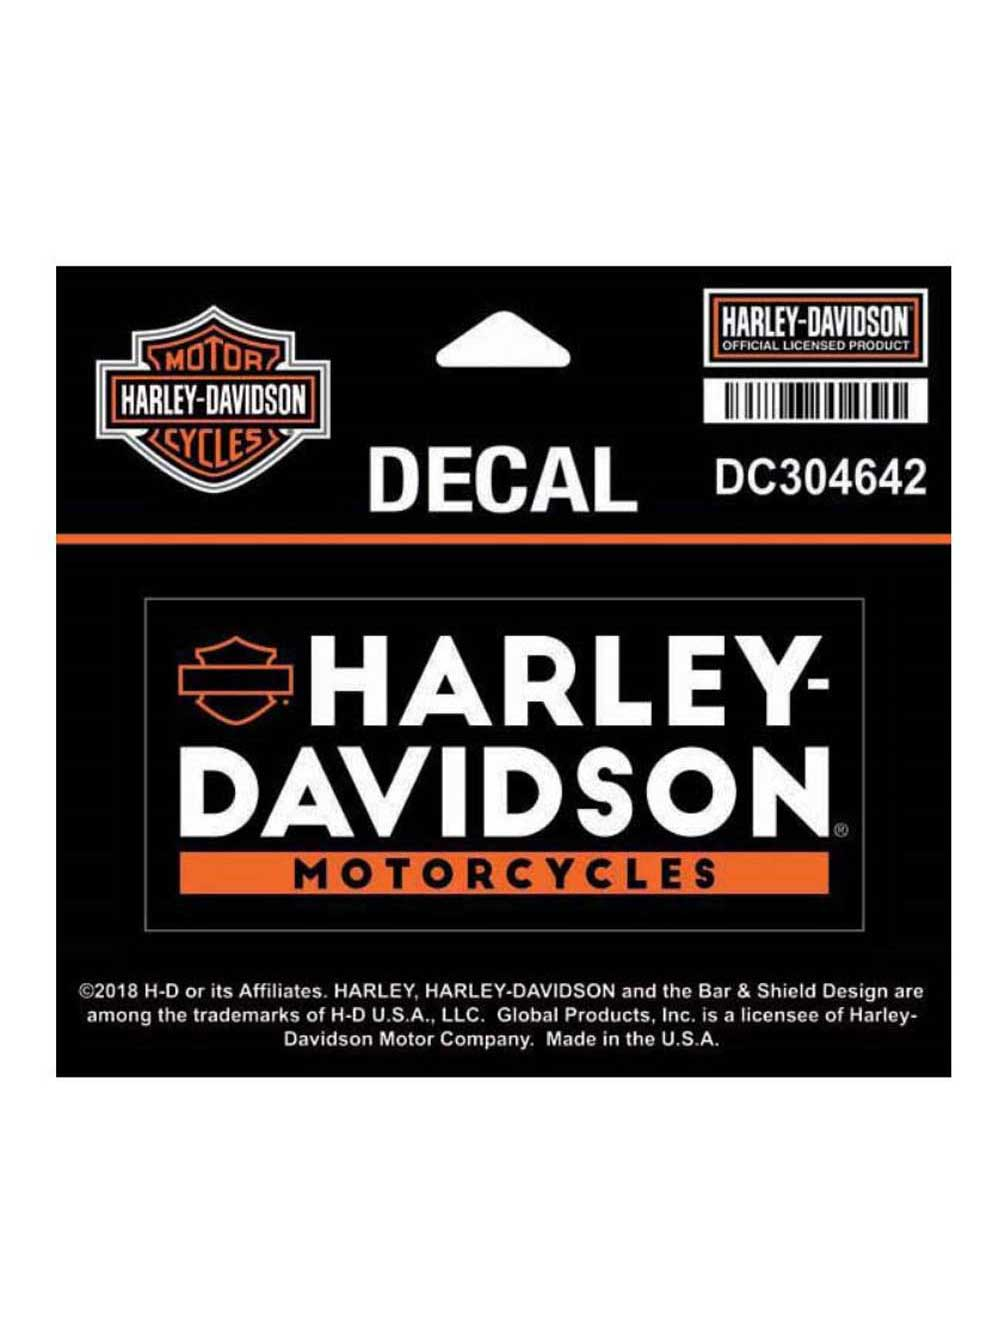 4 x 1.8125 inches DC304642 SM Size Harley-Davidson Basic Text Decal